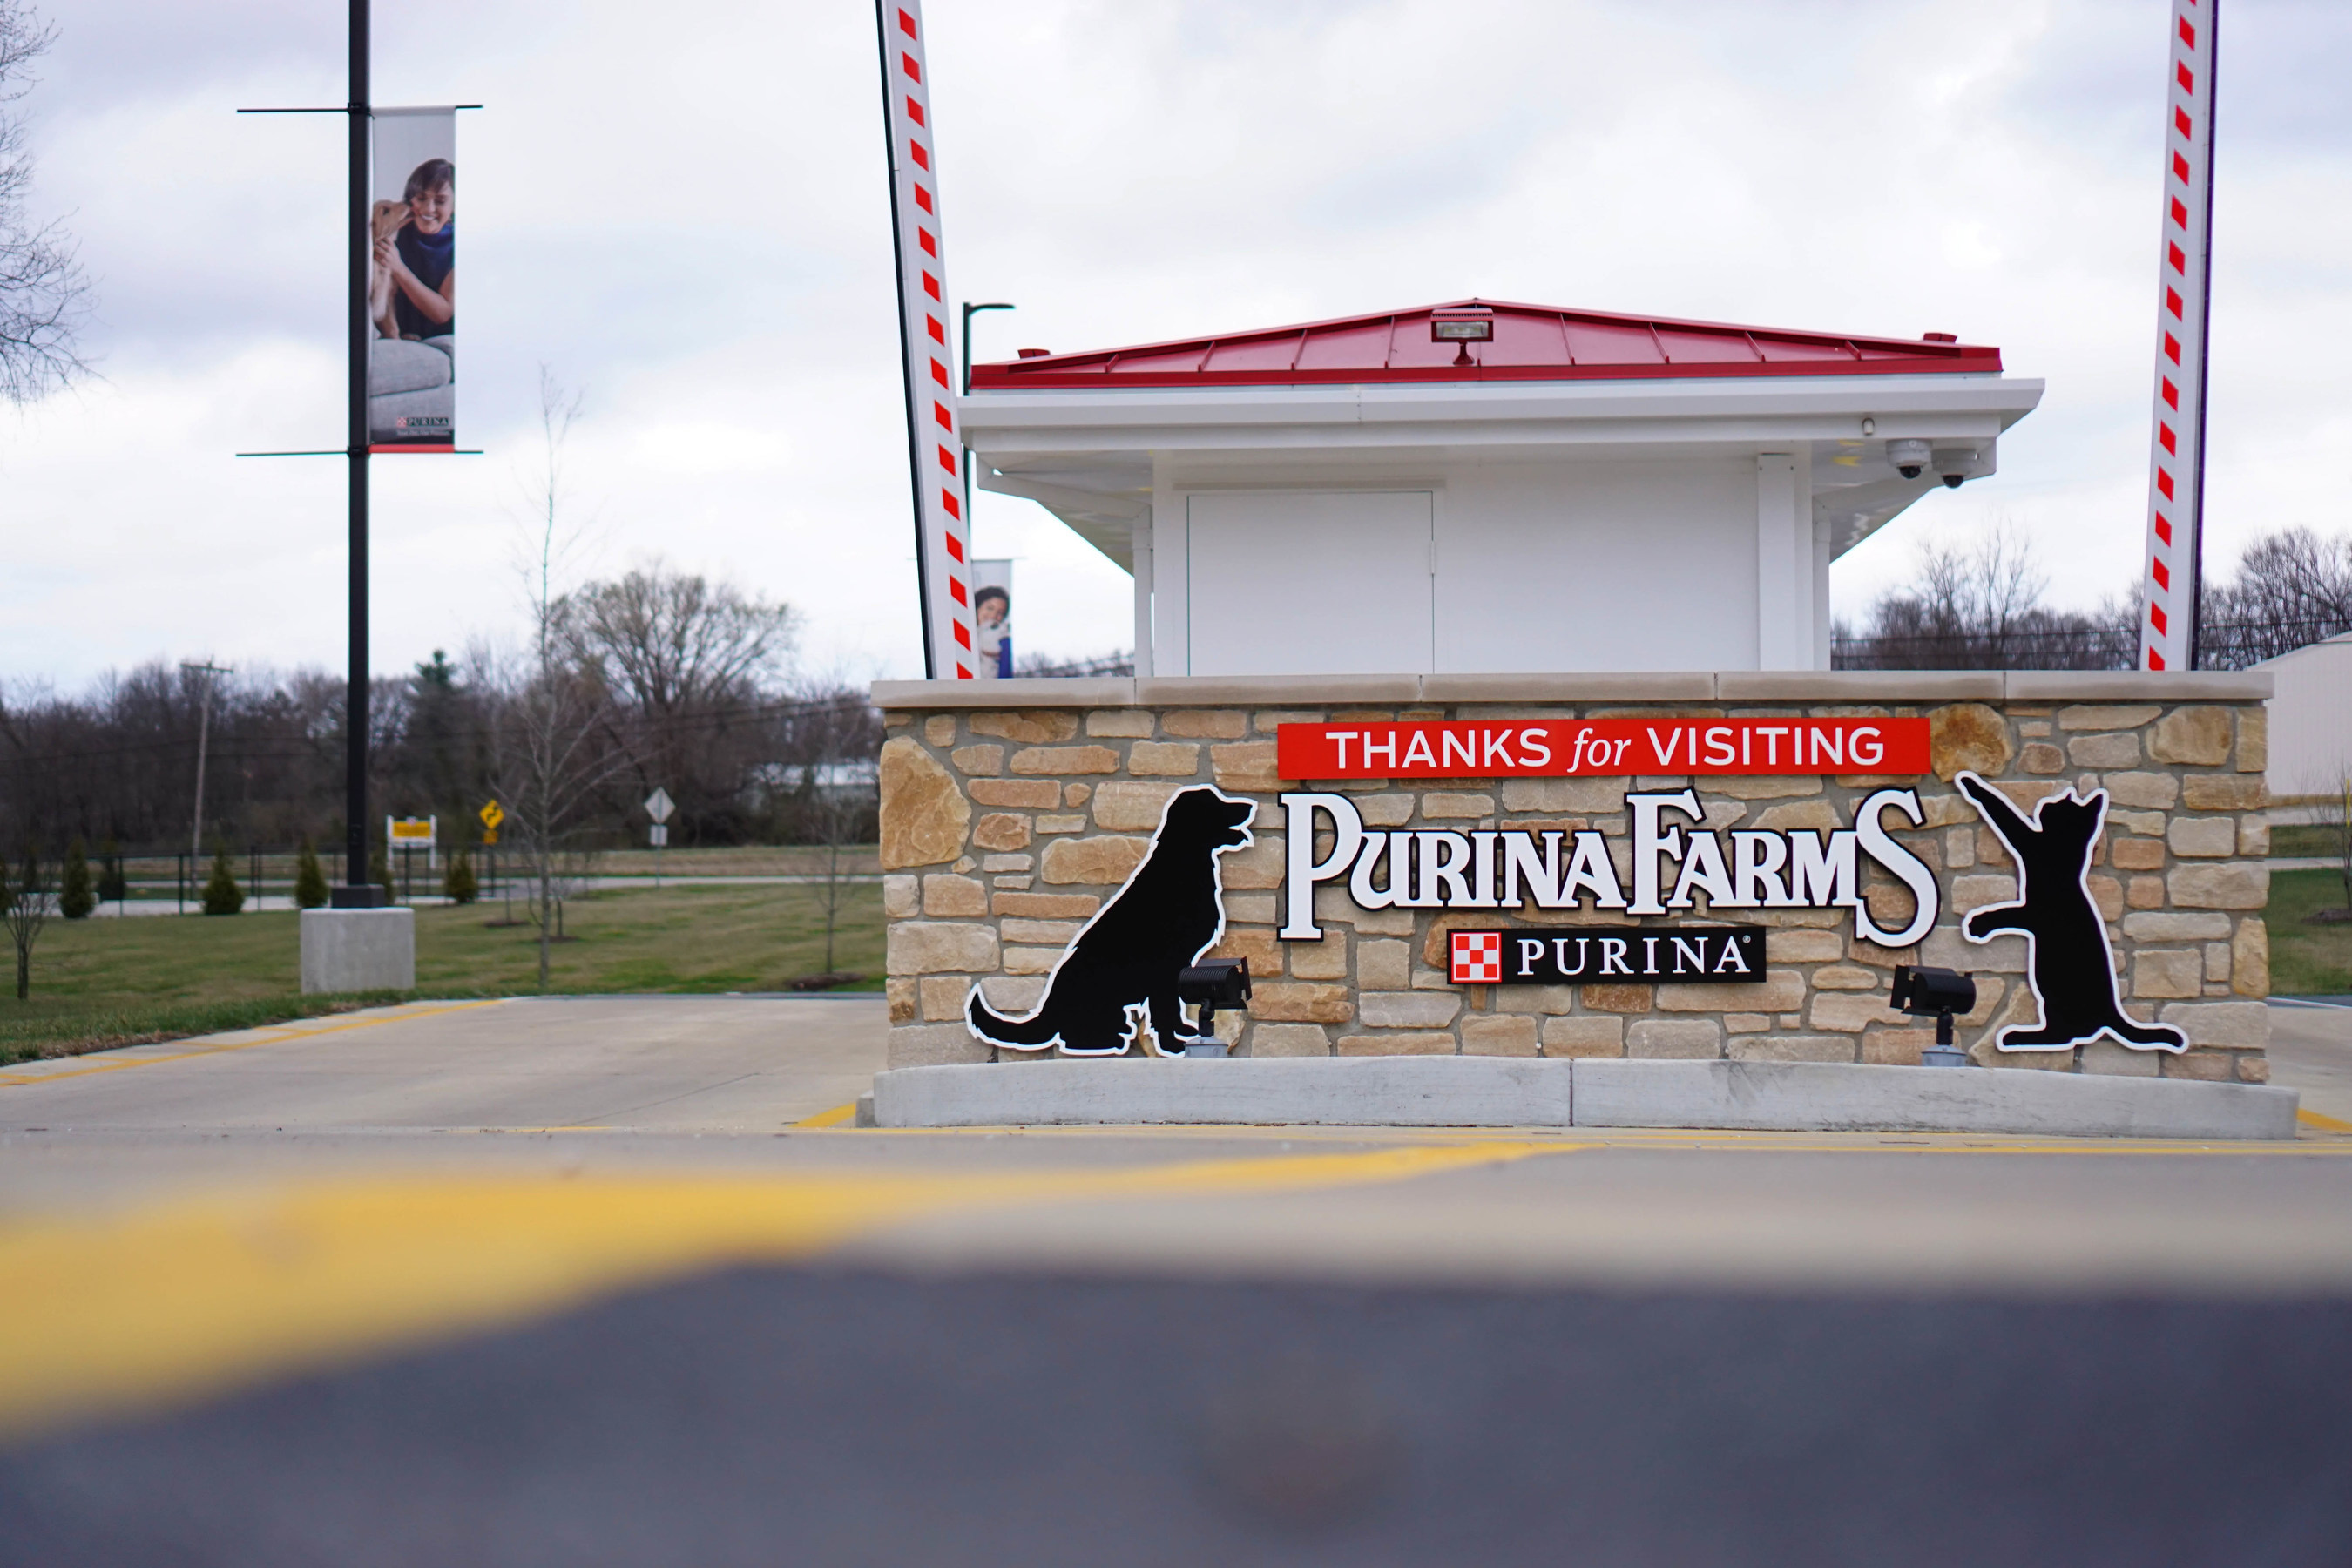 Purina Farms Visitor Center Re Opens For The 2017 Season On March 18 Mar 16 2017